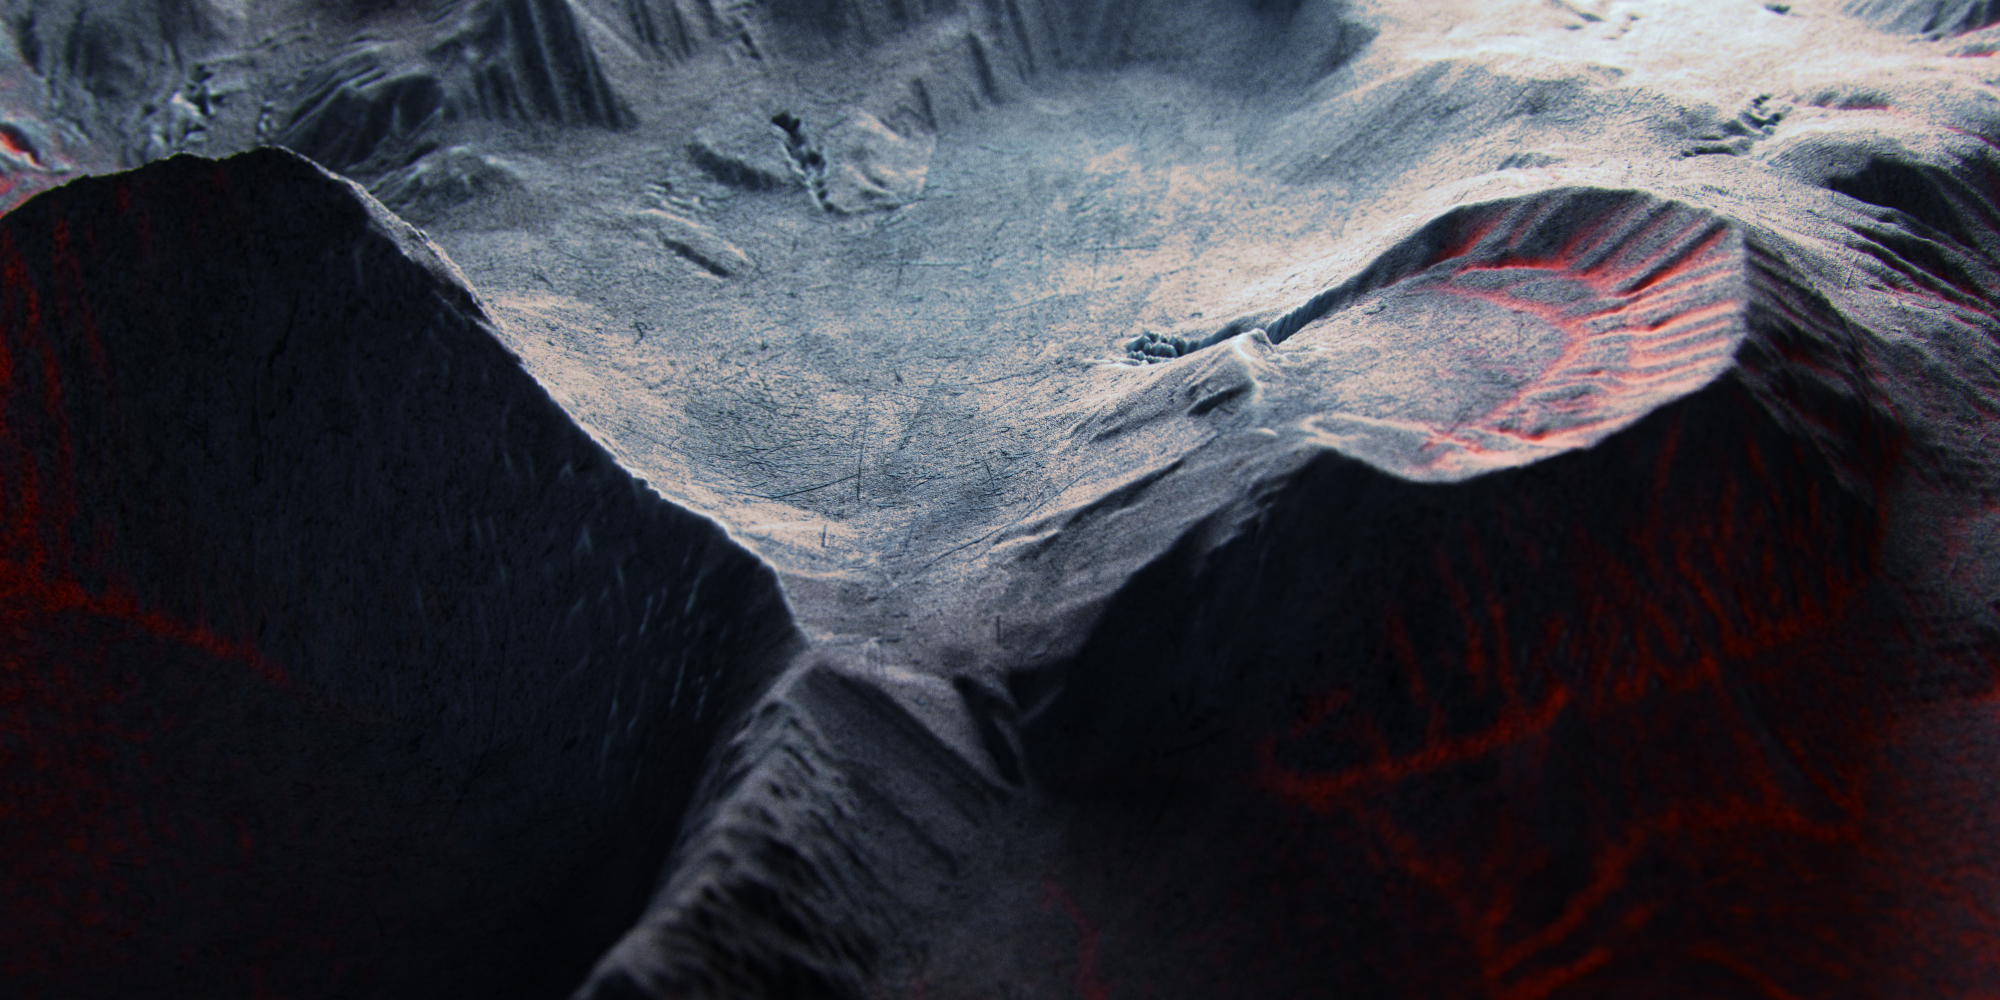 Crater_Render_002.png